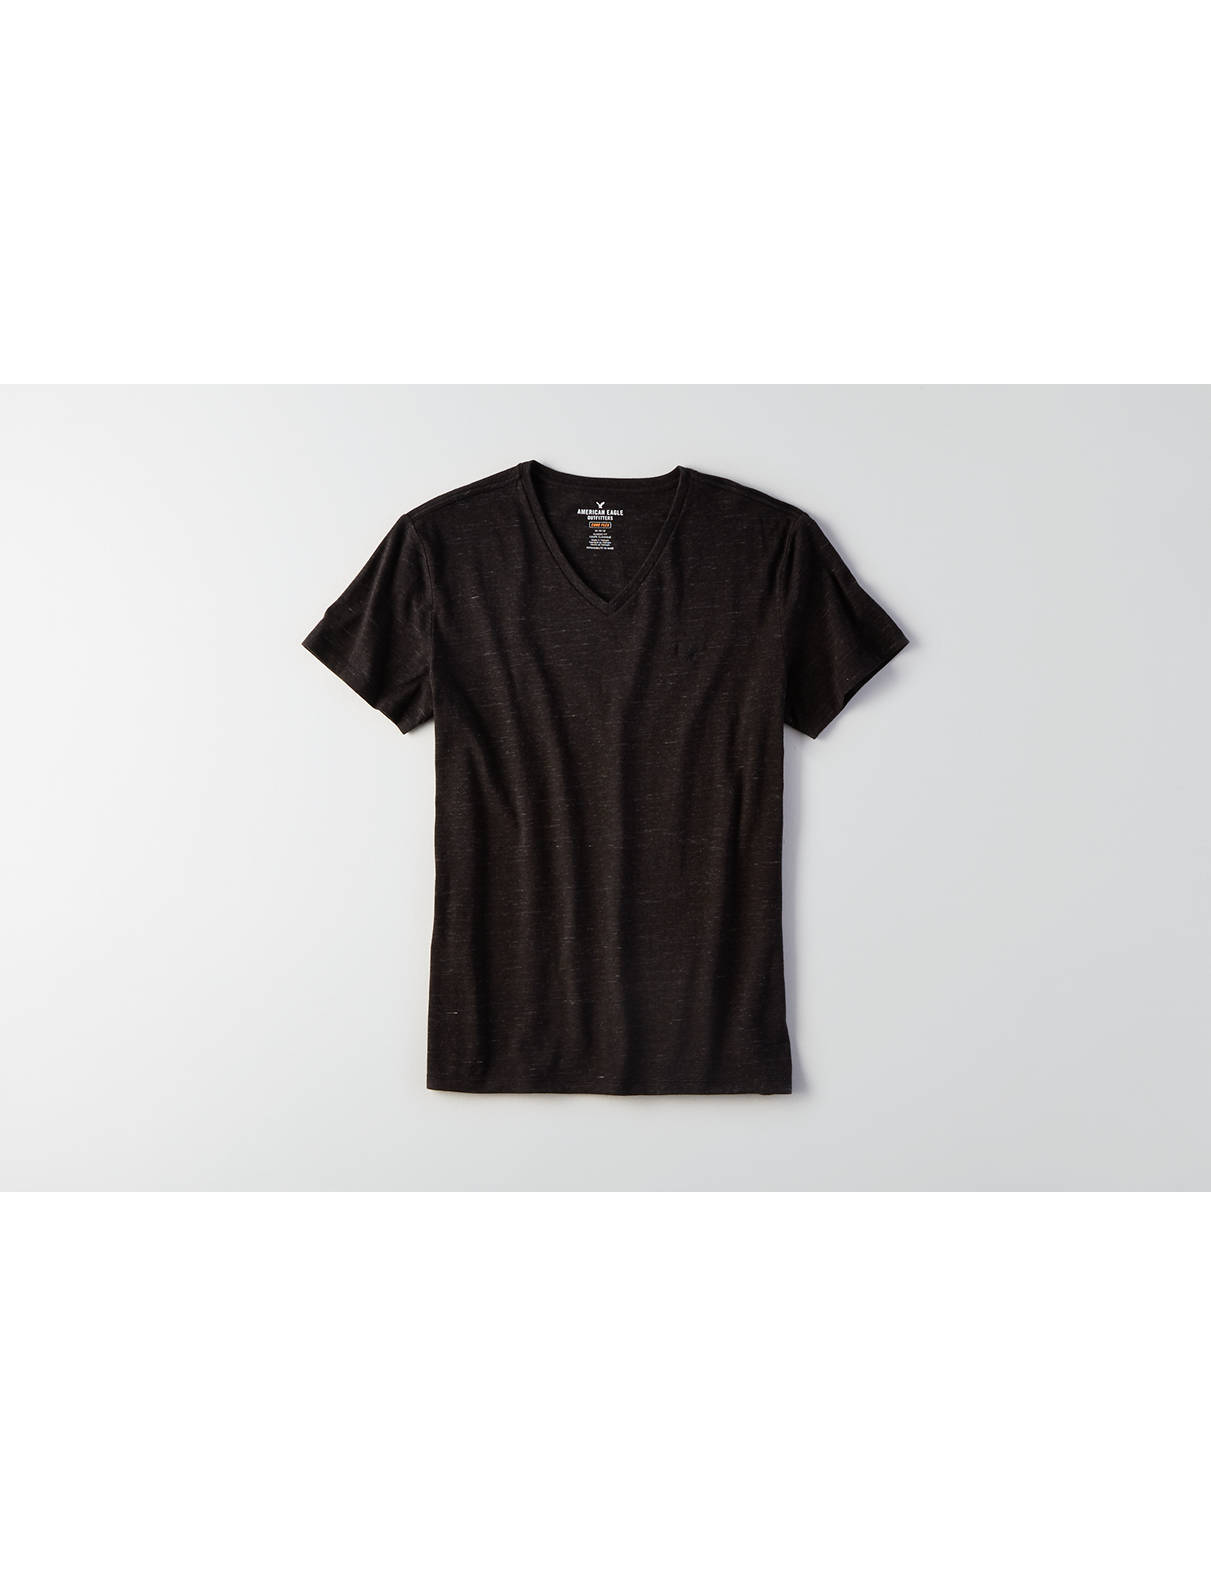 Design t shirt online canada - Display Product Reviews For Aeo Flex Solid V Neck T Shirt